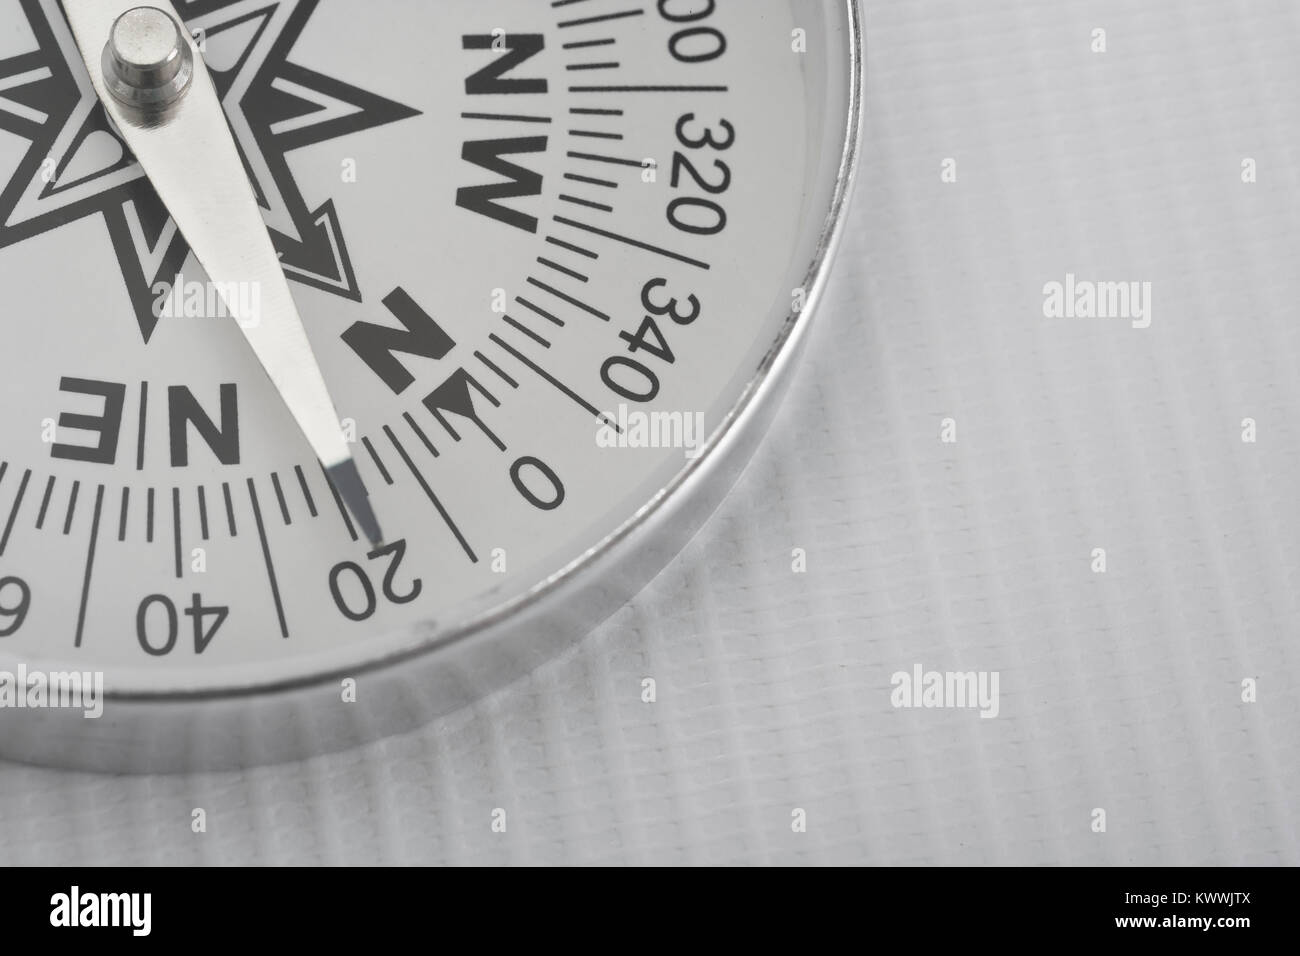 Macro-photo of compass rose face with needle. Concept navigation, compass north. - Stock Image